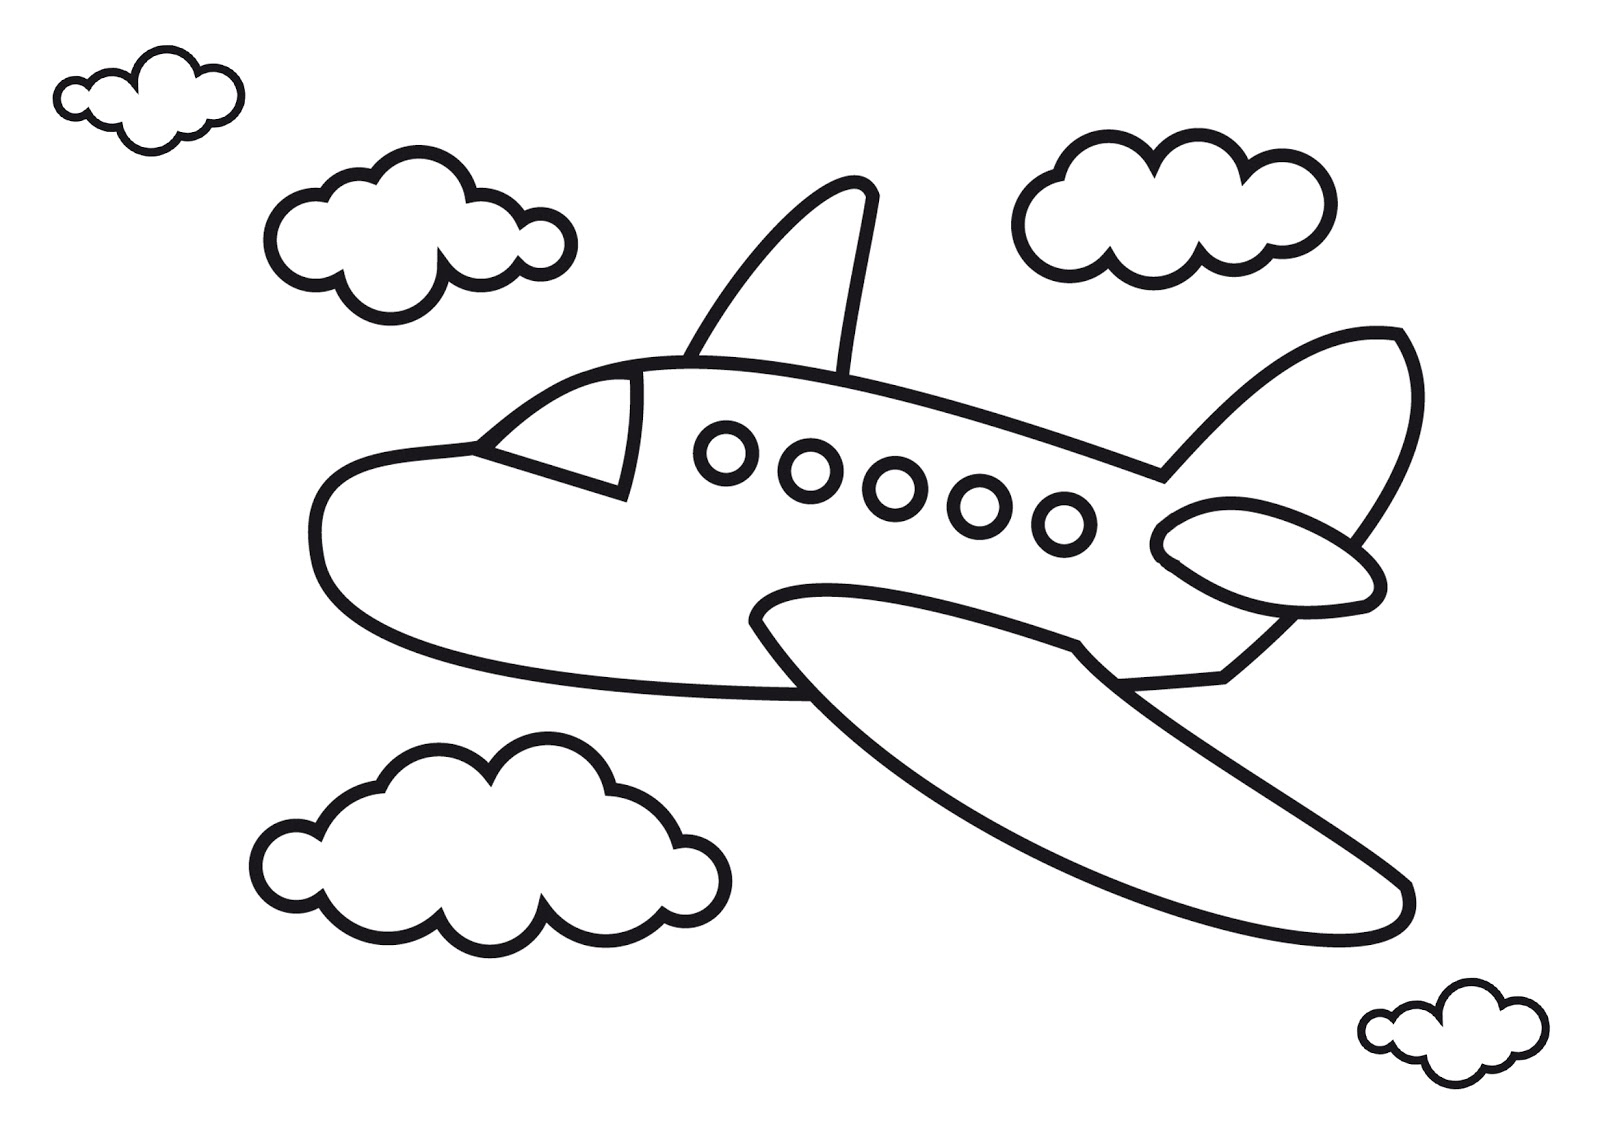 It's just an image of Impeccable Easy Airplane Drawing